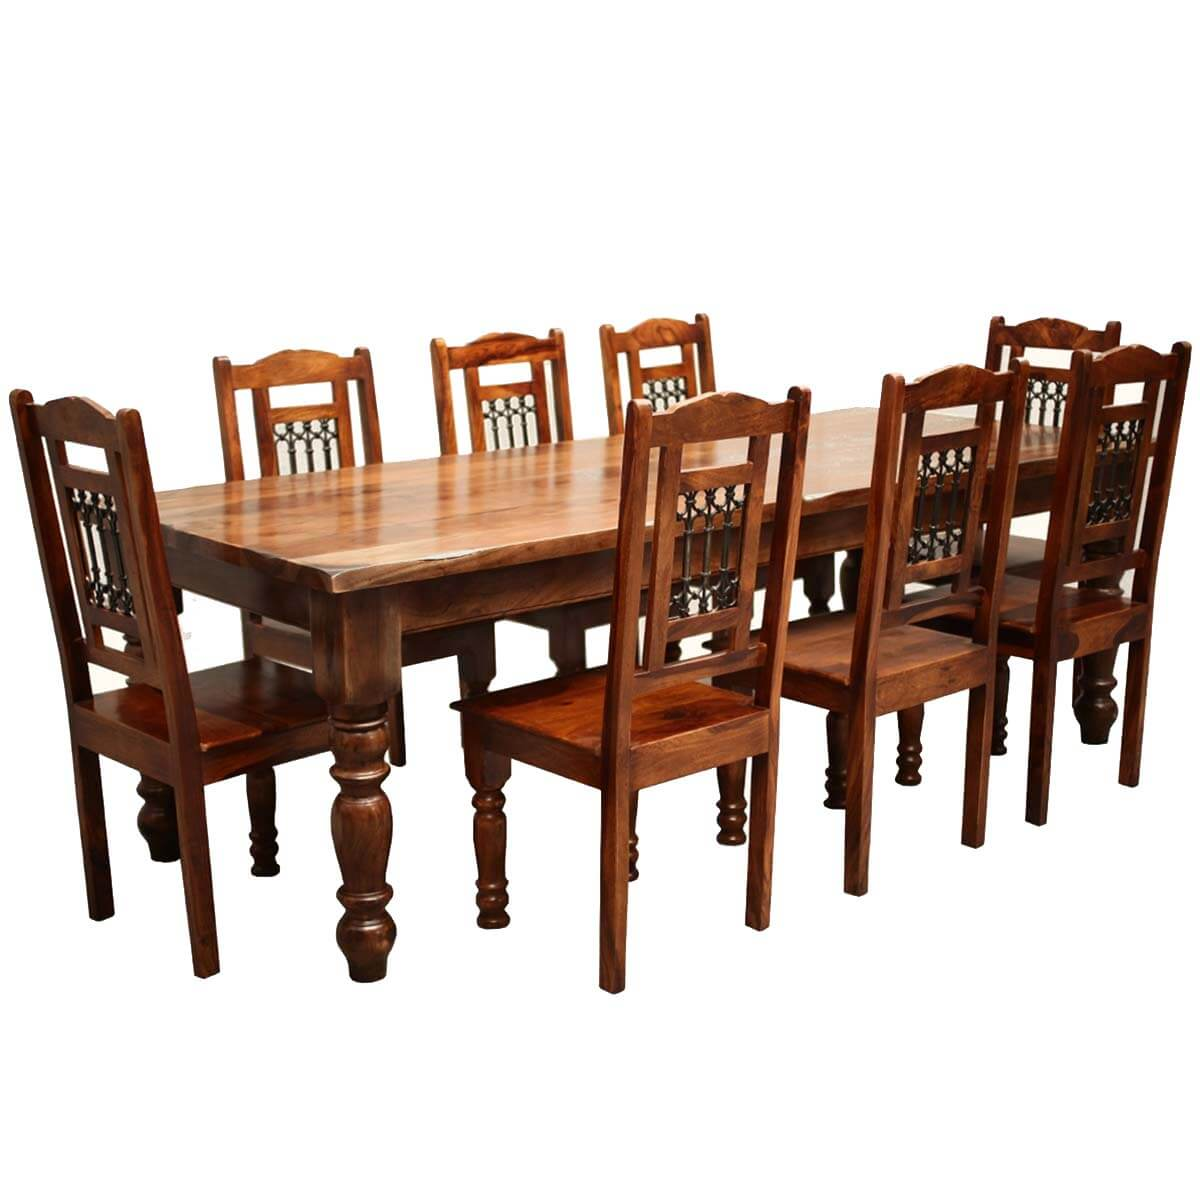 Rustic furniture solid wood large dining table 8 chair set for Breakfast table and chairs